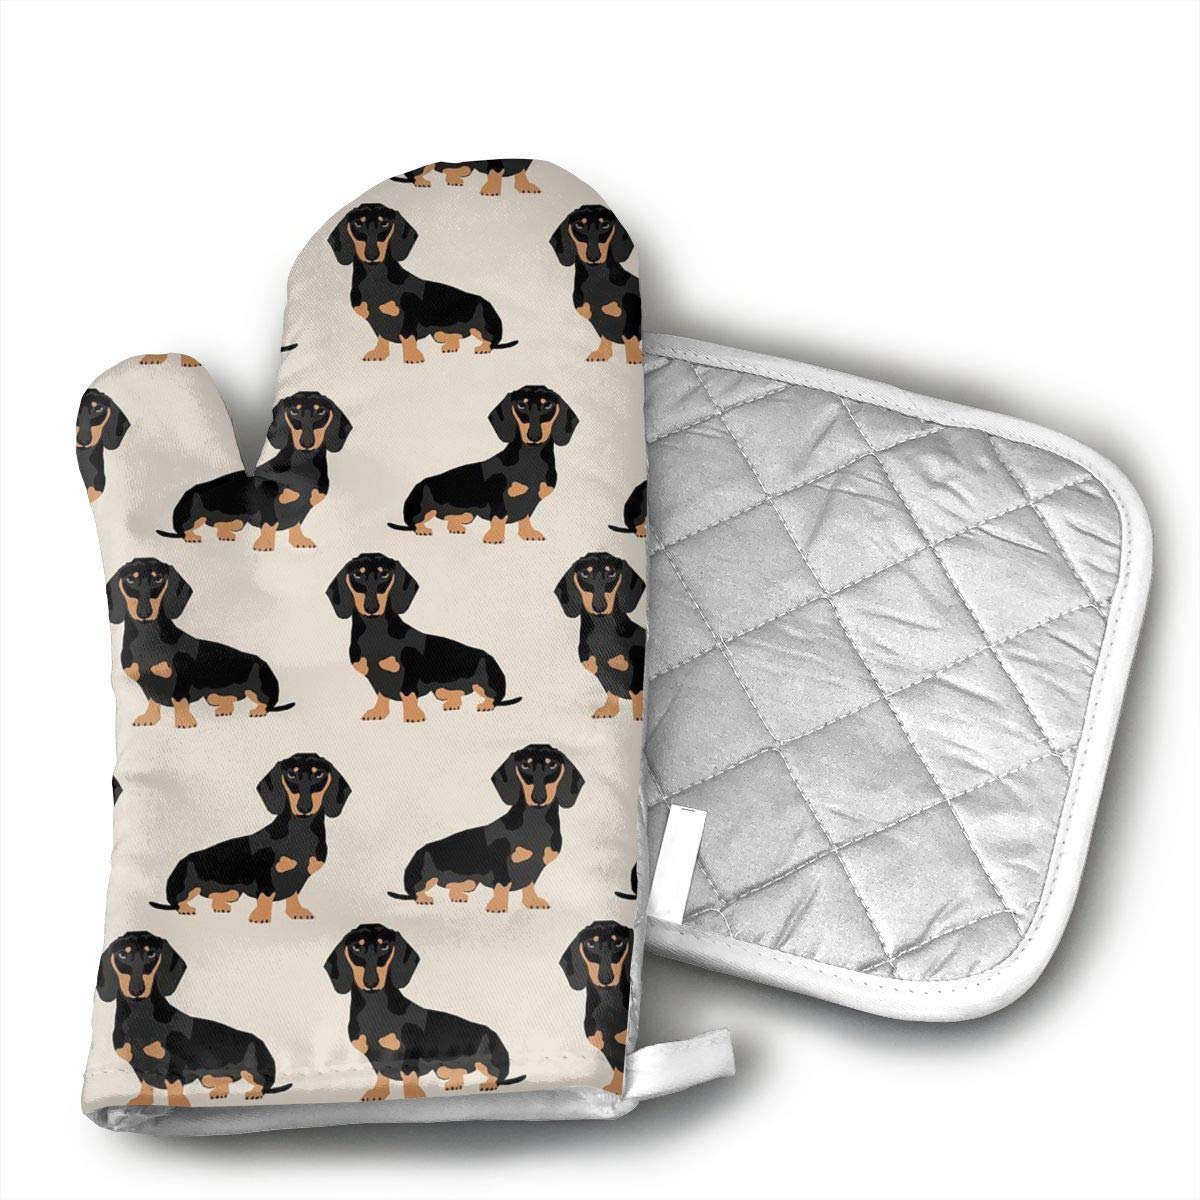 Wiener Dog Fabric Oven Mitt and Pot Holder Set(1Hot Pads and 1 Potholders) for Kitchen Cooking Baking Grilling Heat Resistant